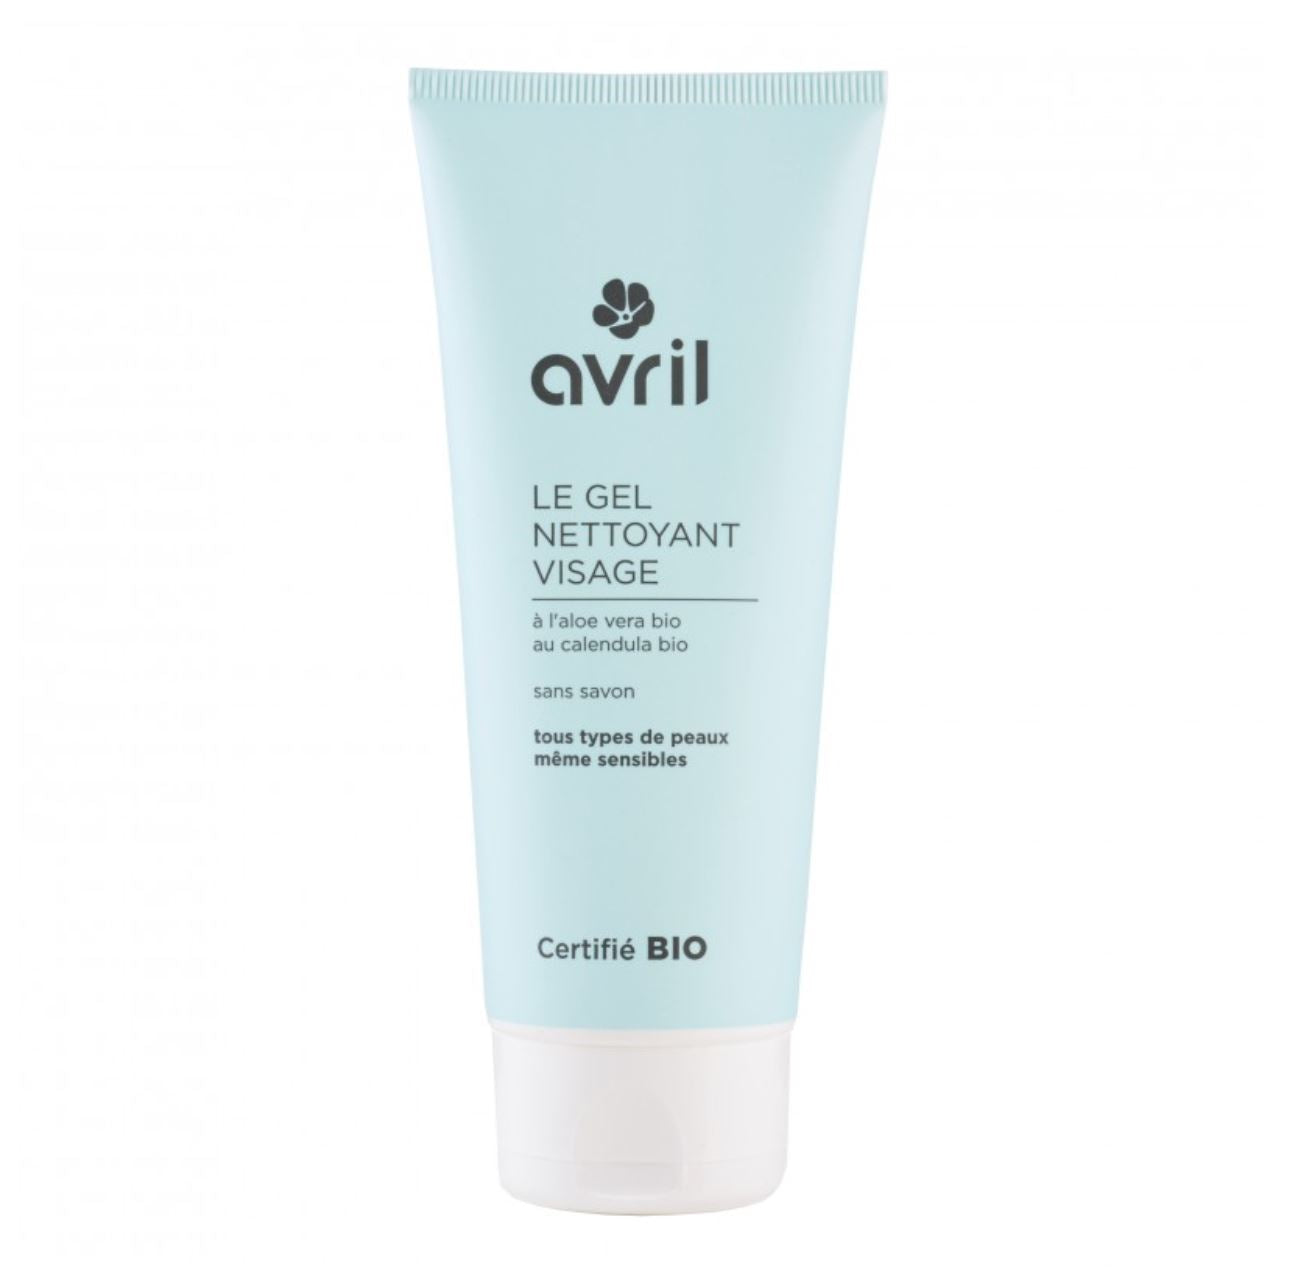 AVRIL CLEANSING GEL 100ml - certified organic by ECOCERT